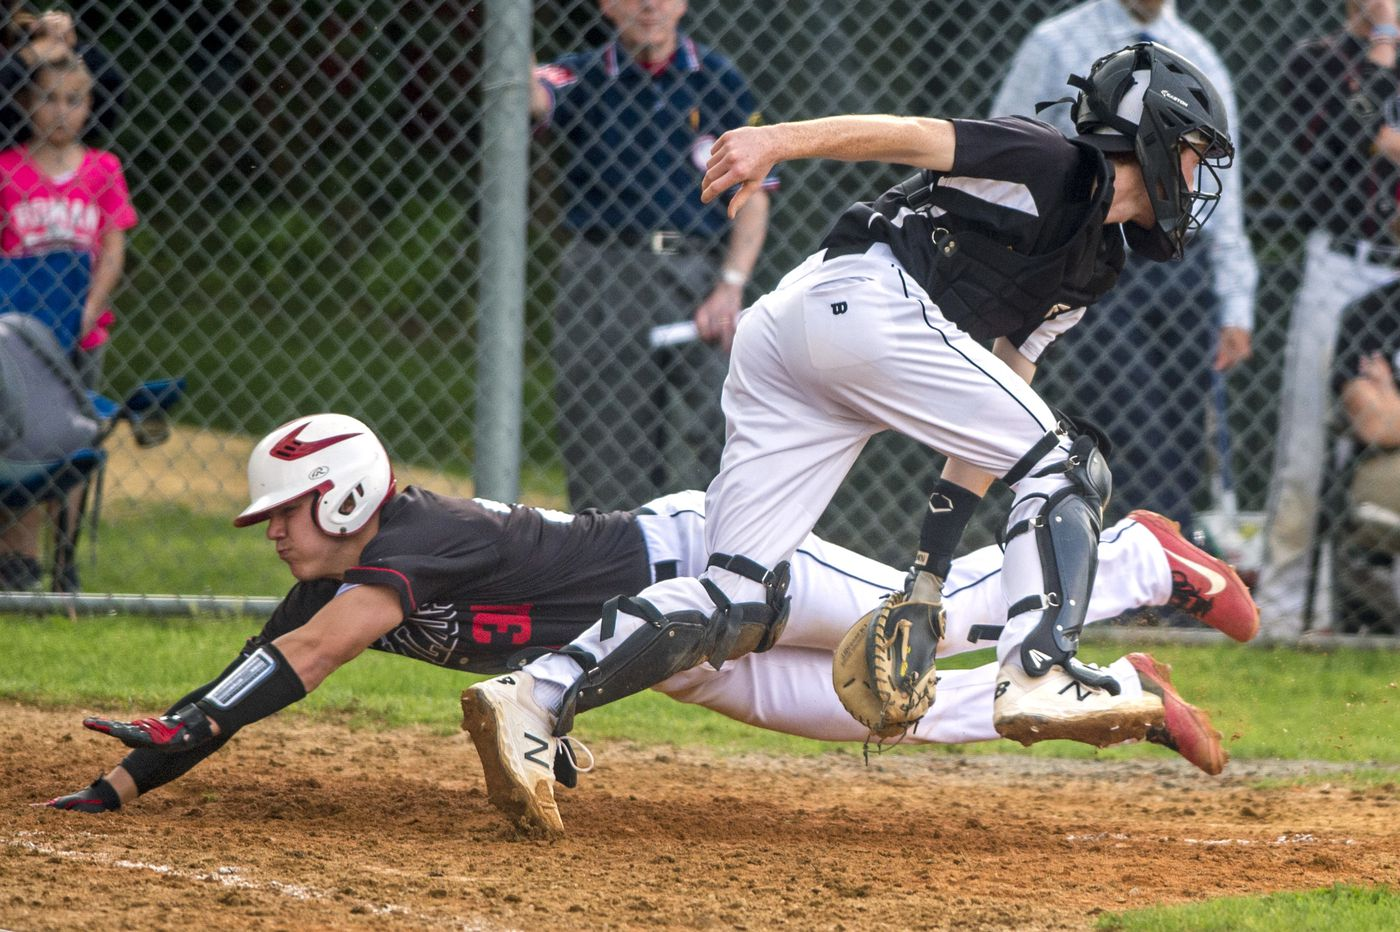 Chris Brown fights back from foot injury to lead Haddonfield baseball team